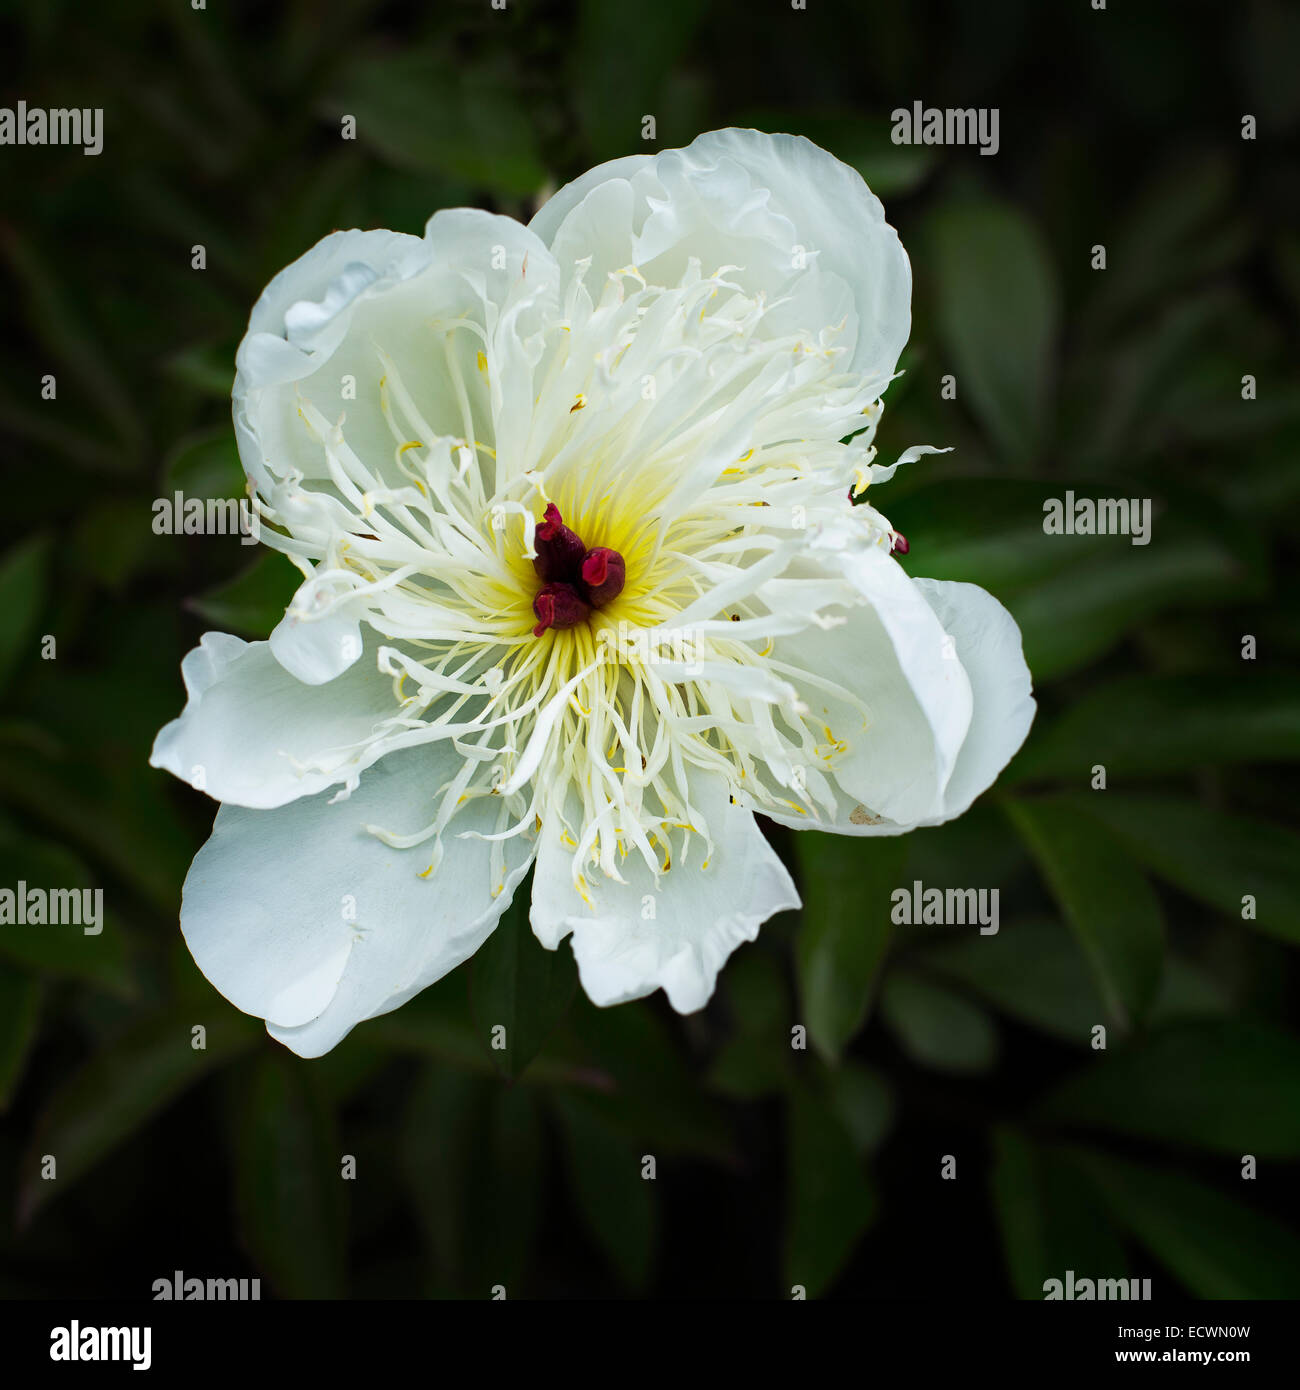 A white Peony flower - Stock Image